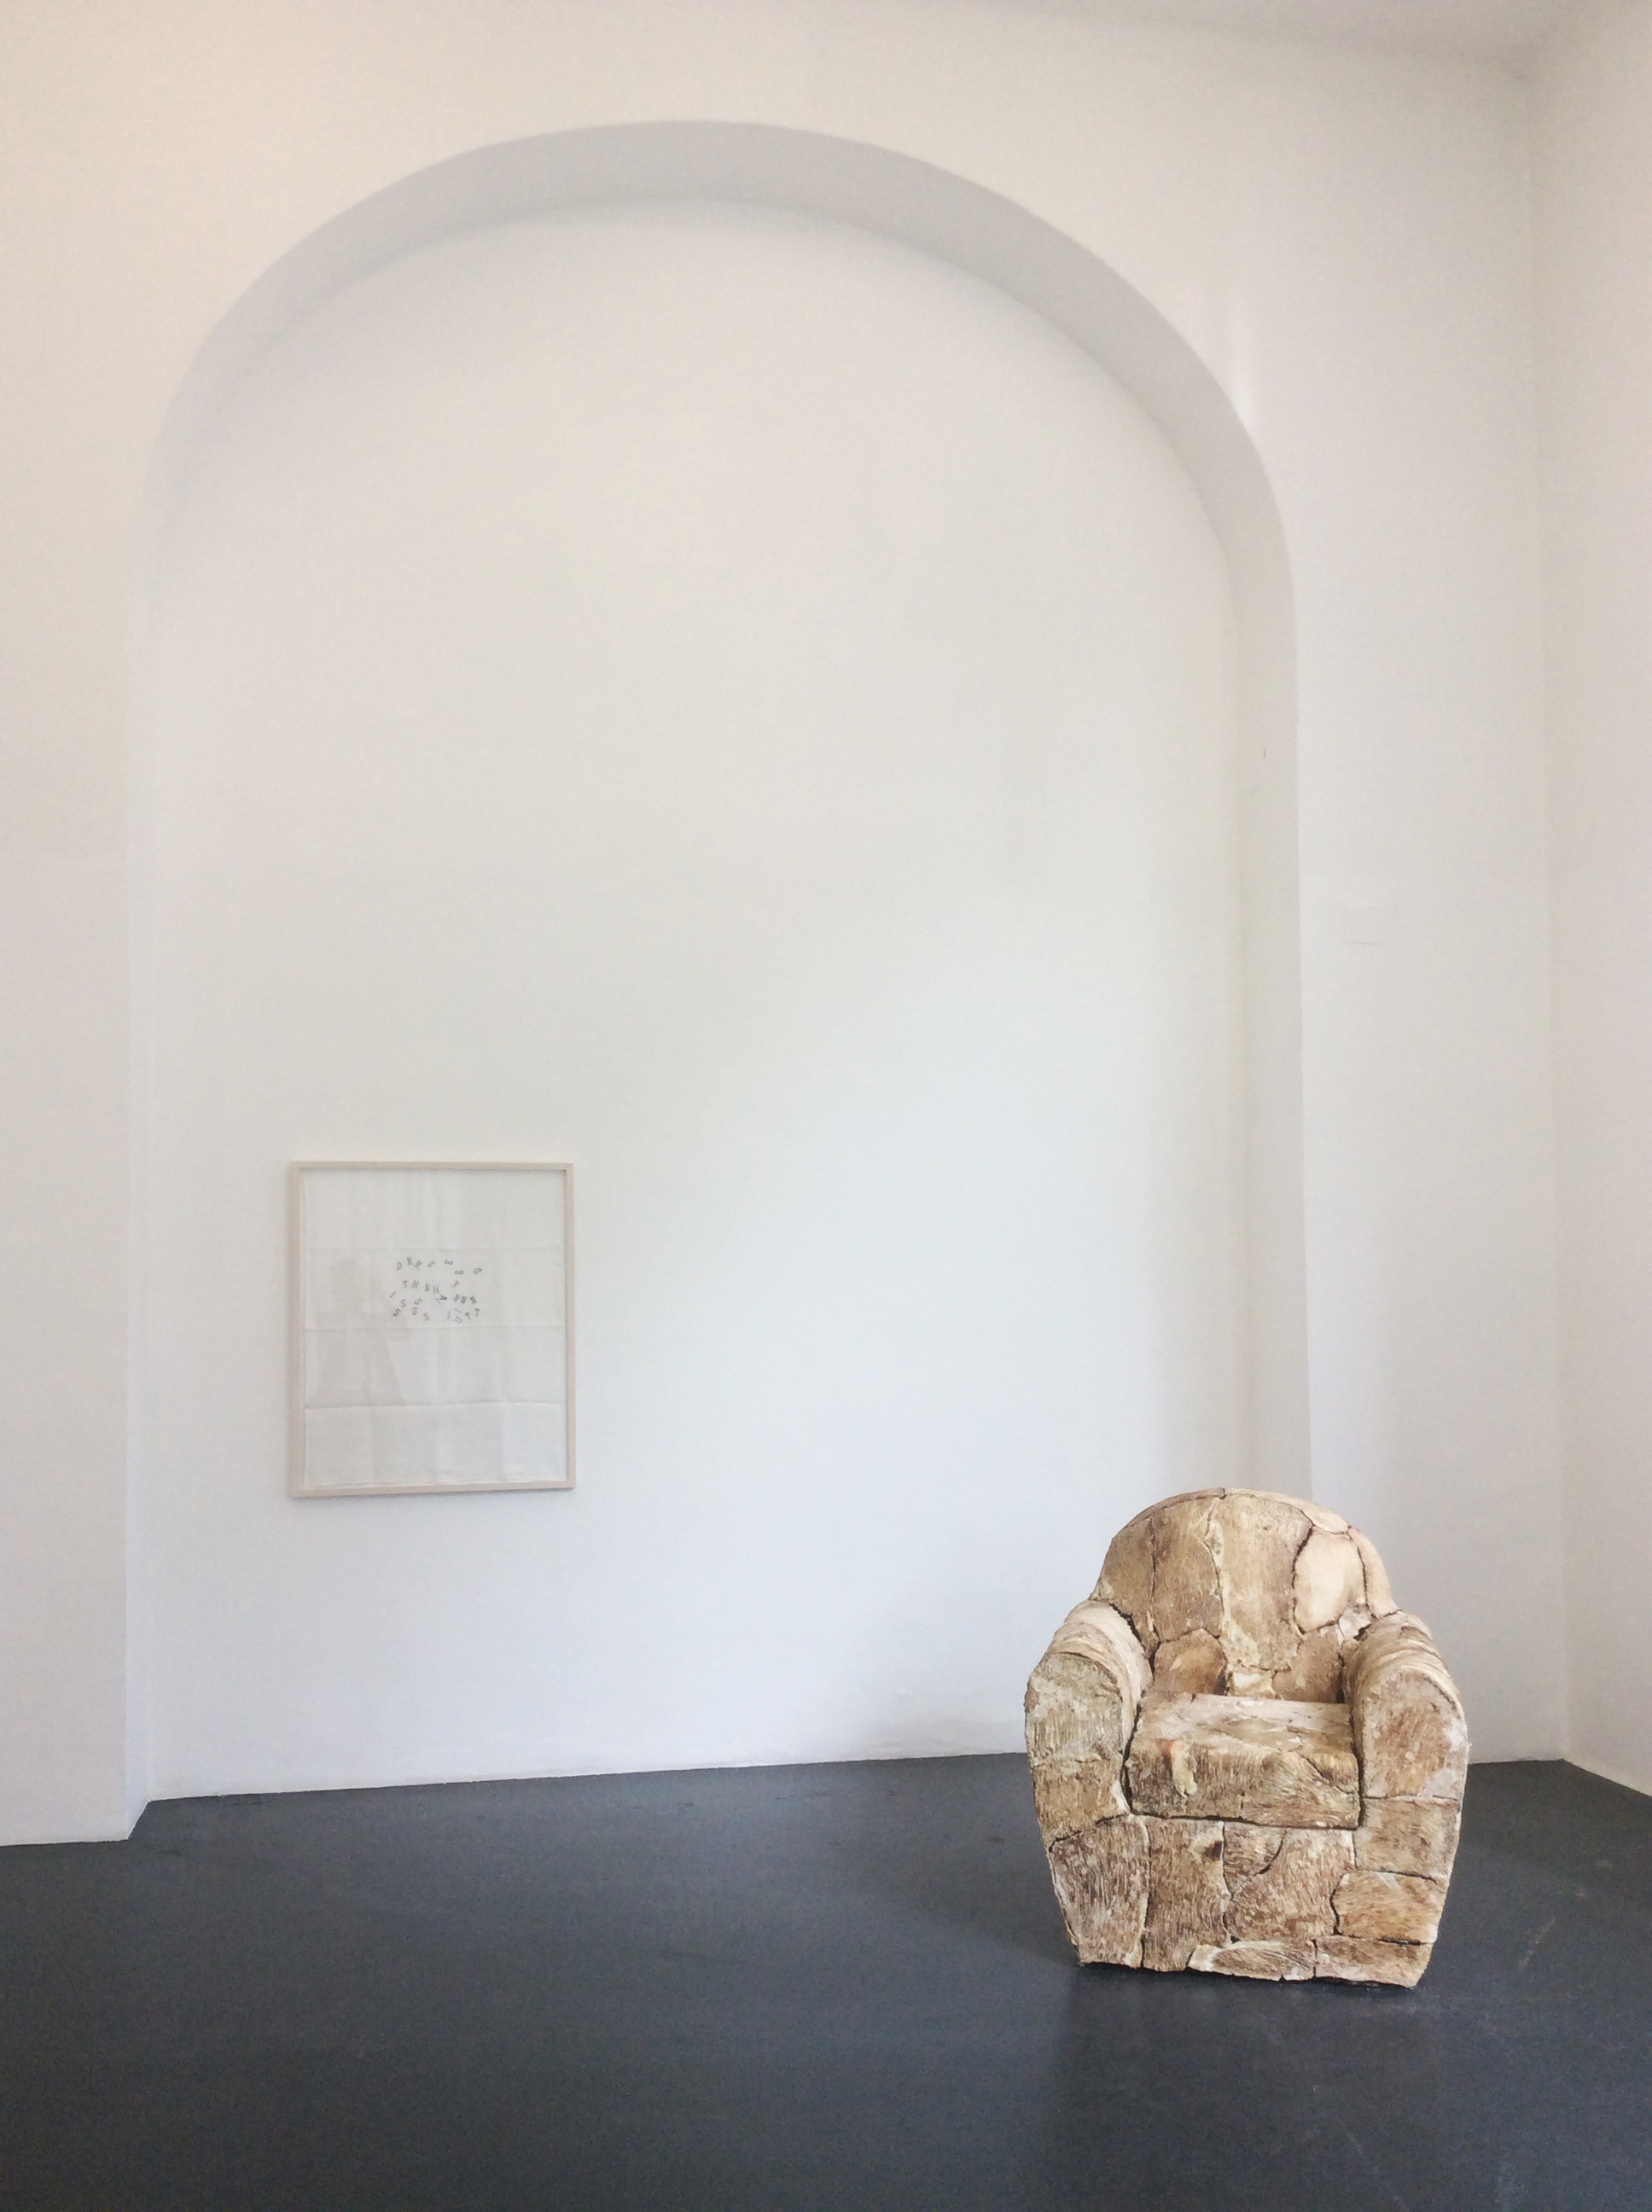 """Exhibition view """"I´ve decided to be Happy because it´s good for one´s health"""" by Jana Sterbak, Galerie Steinek, 2016, Photo: Tachdjian"""